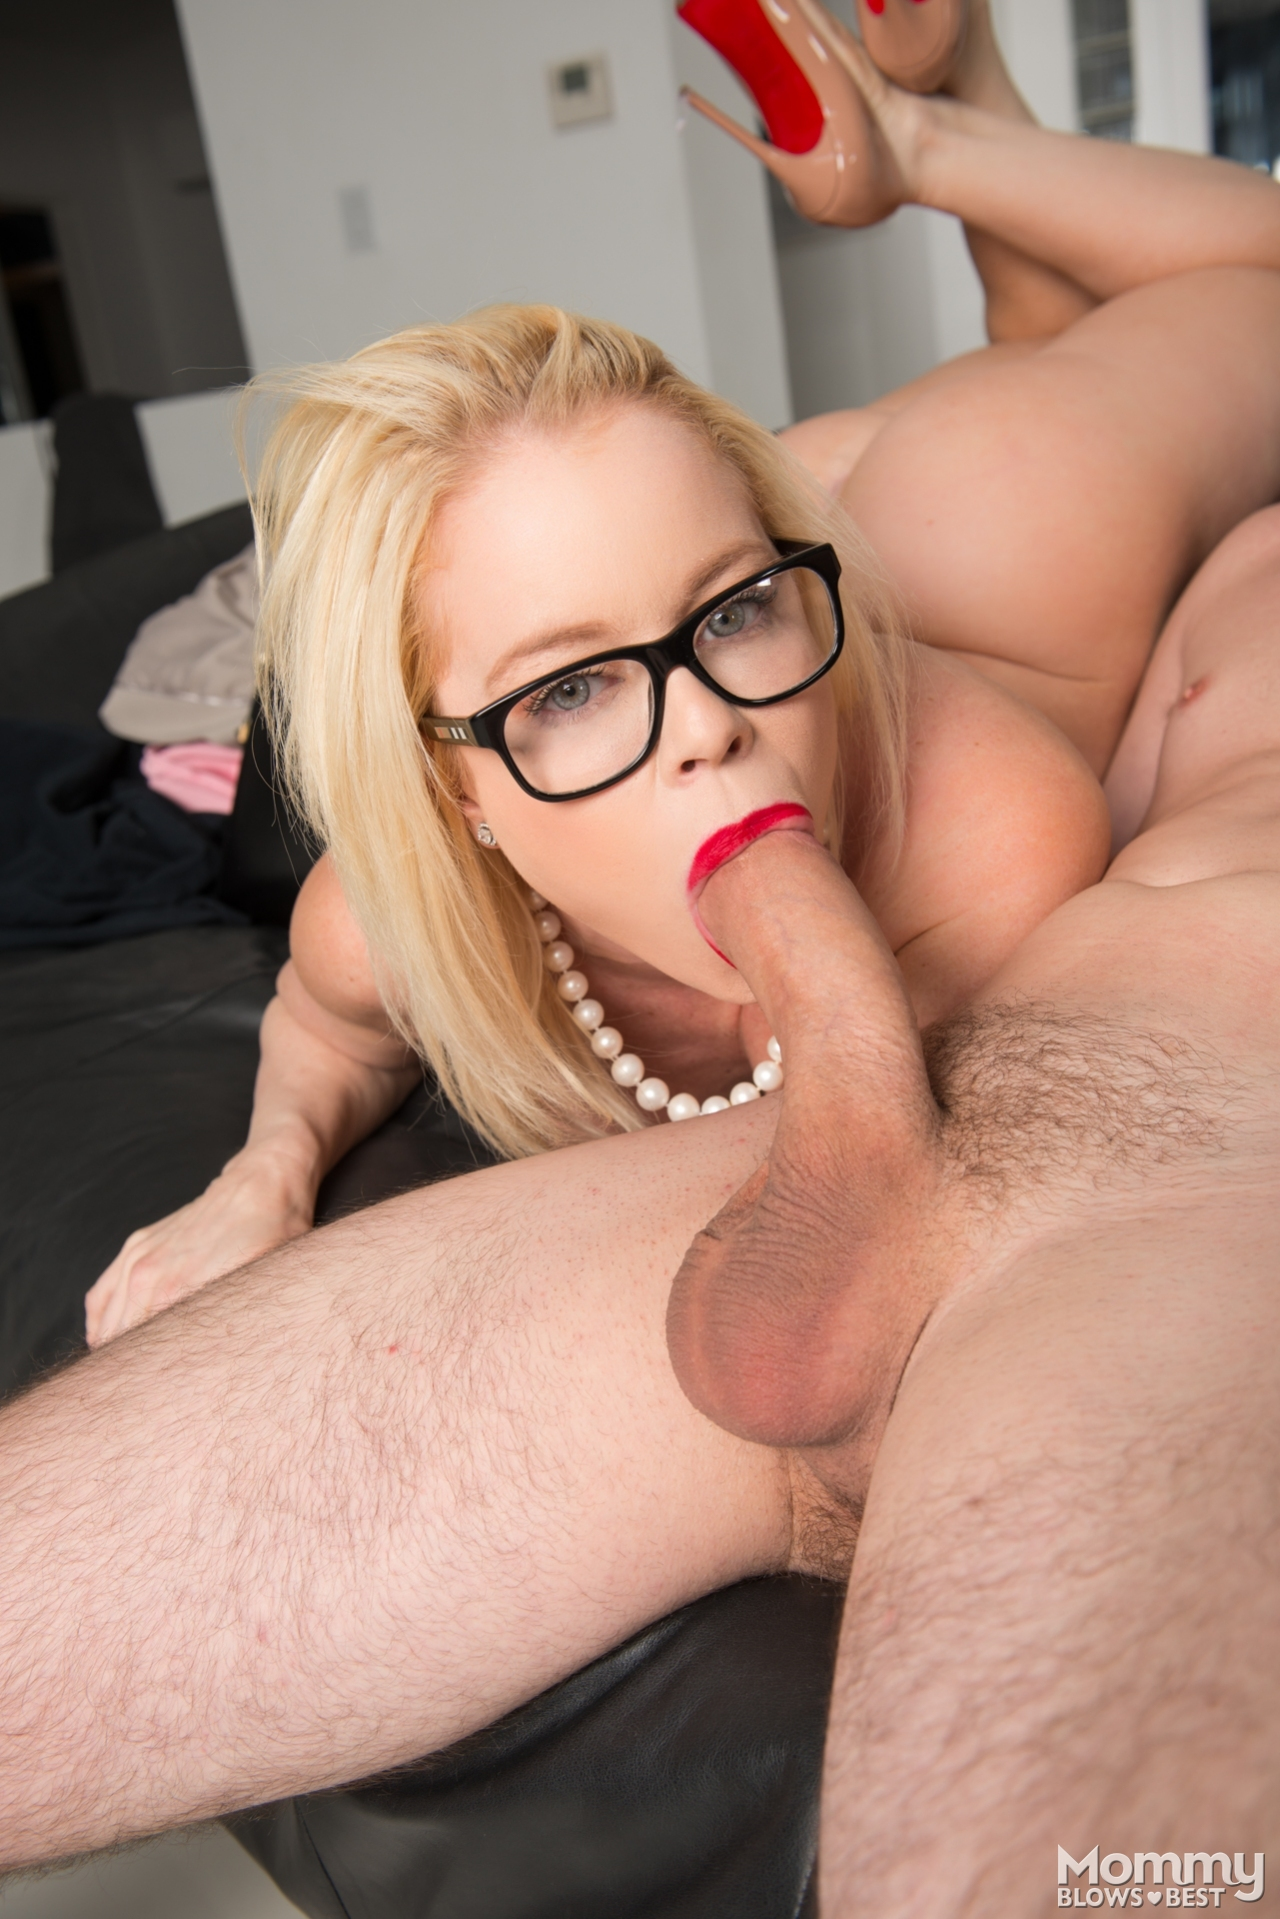 Mommy blows best tube